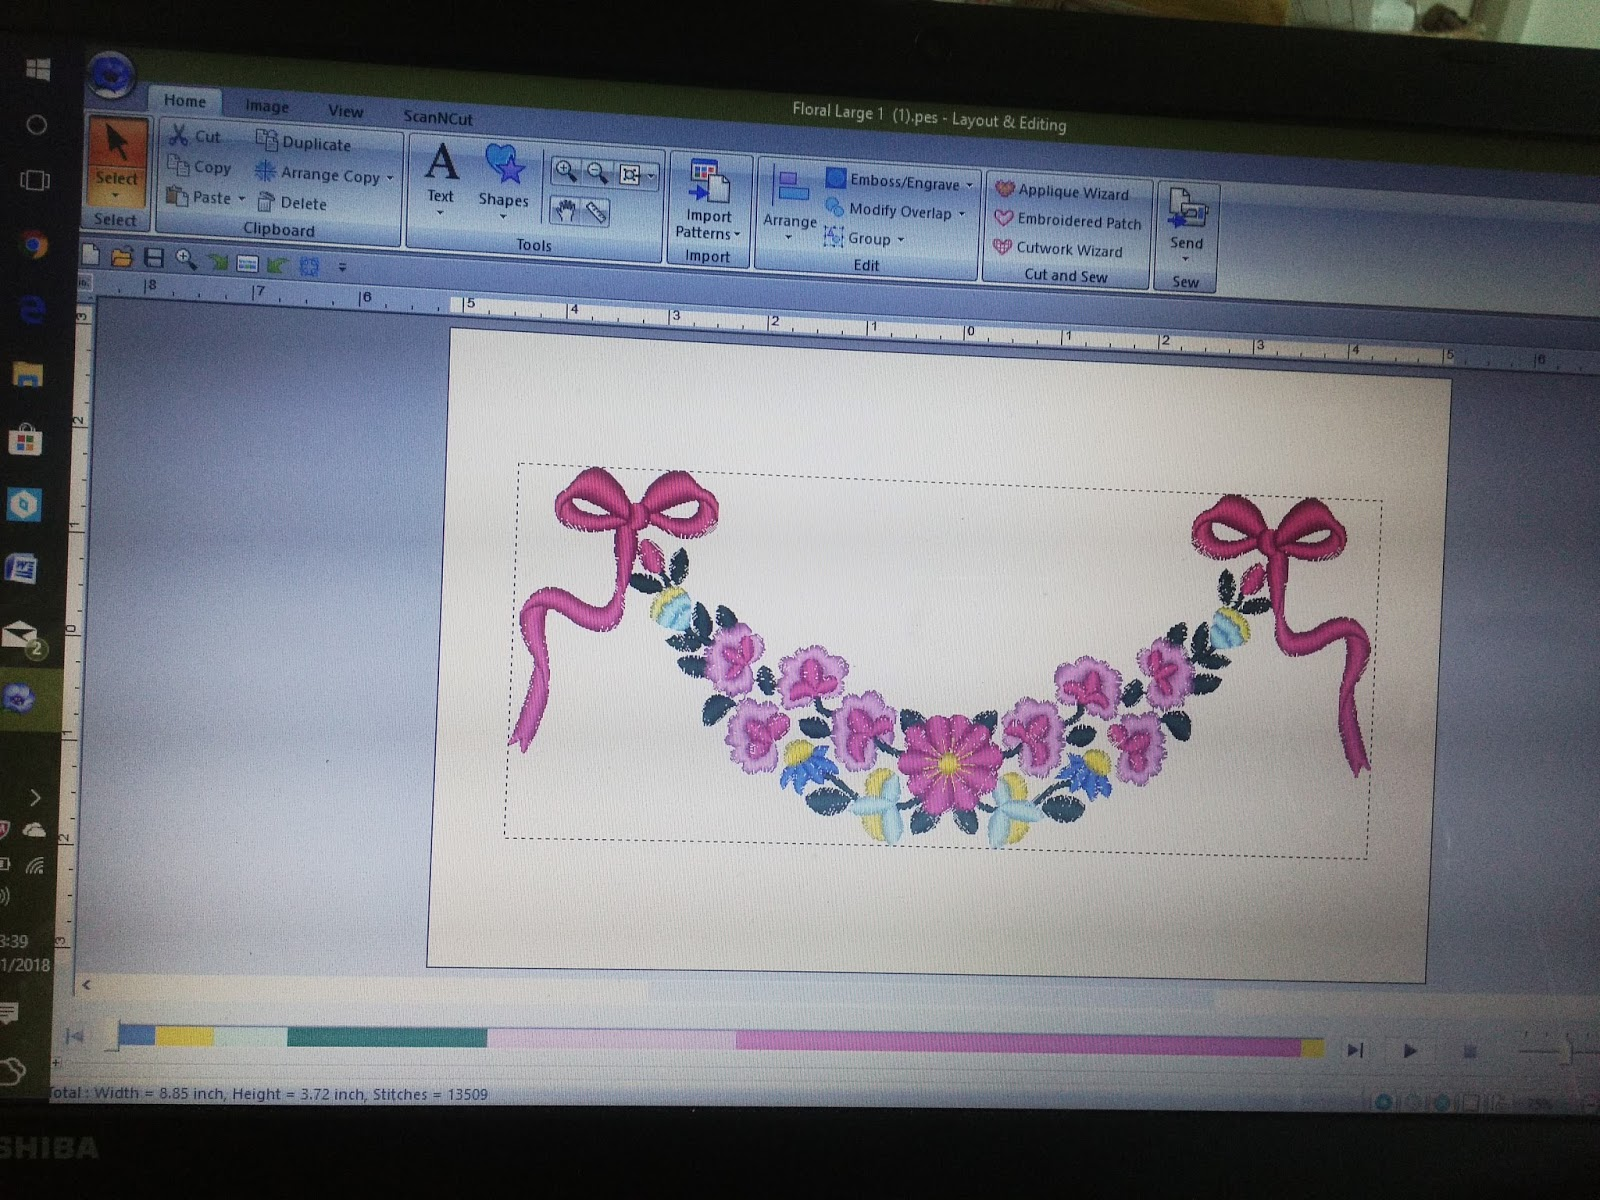 Embroidery Design Software Getting Going Jaycotts